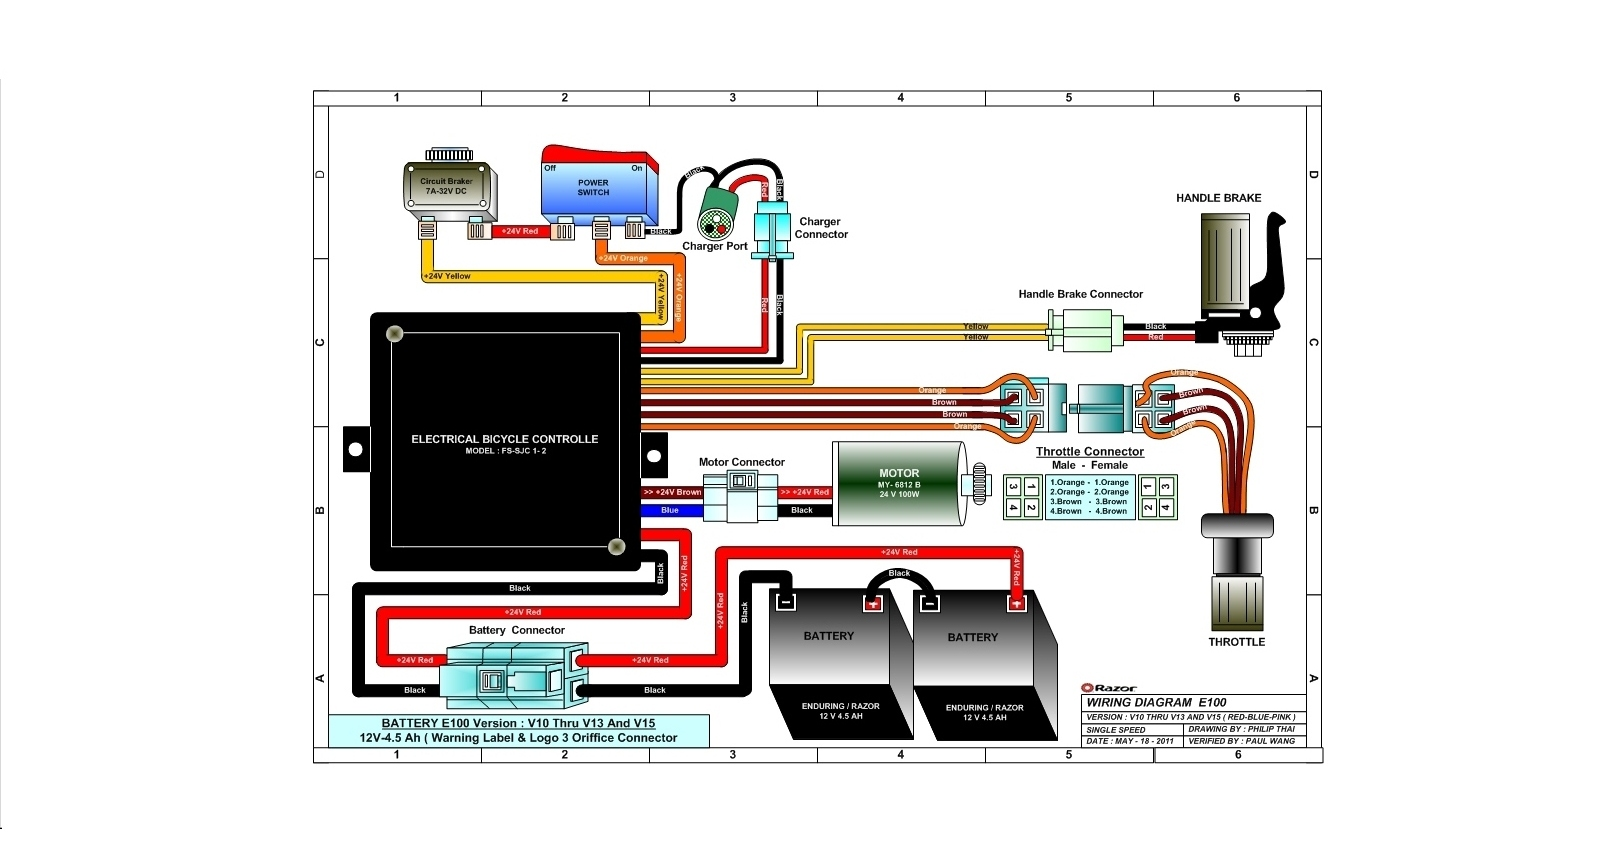 ... E100 (versions 10-13 & 15) Wiring Diagram ...